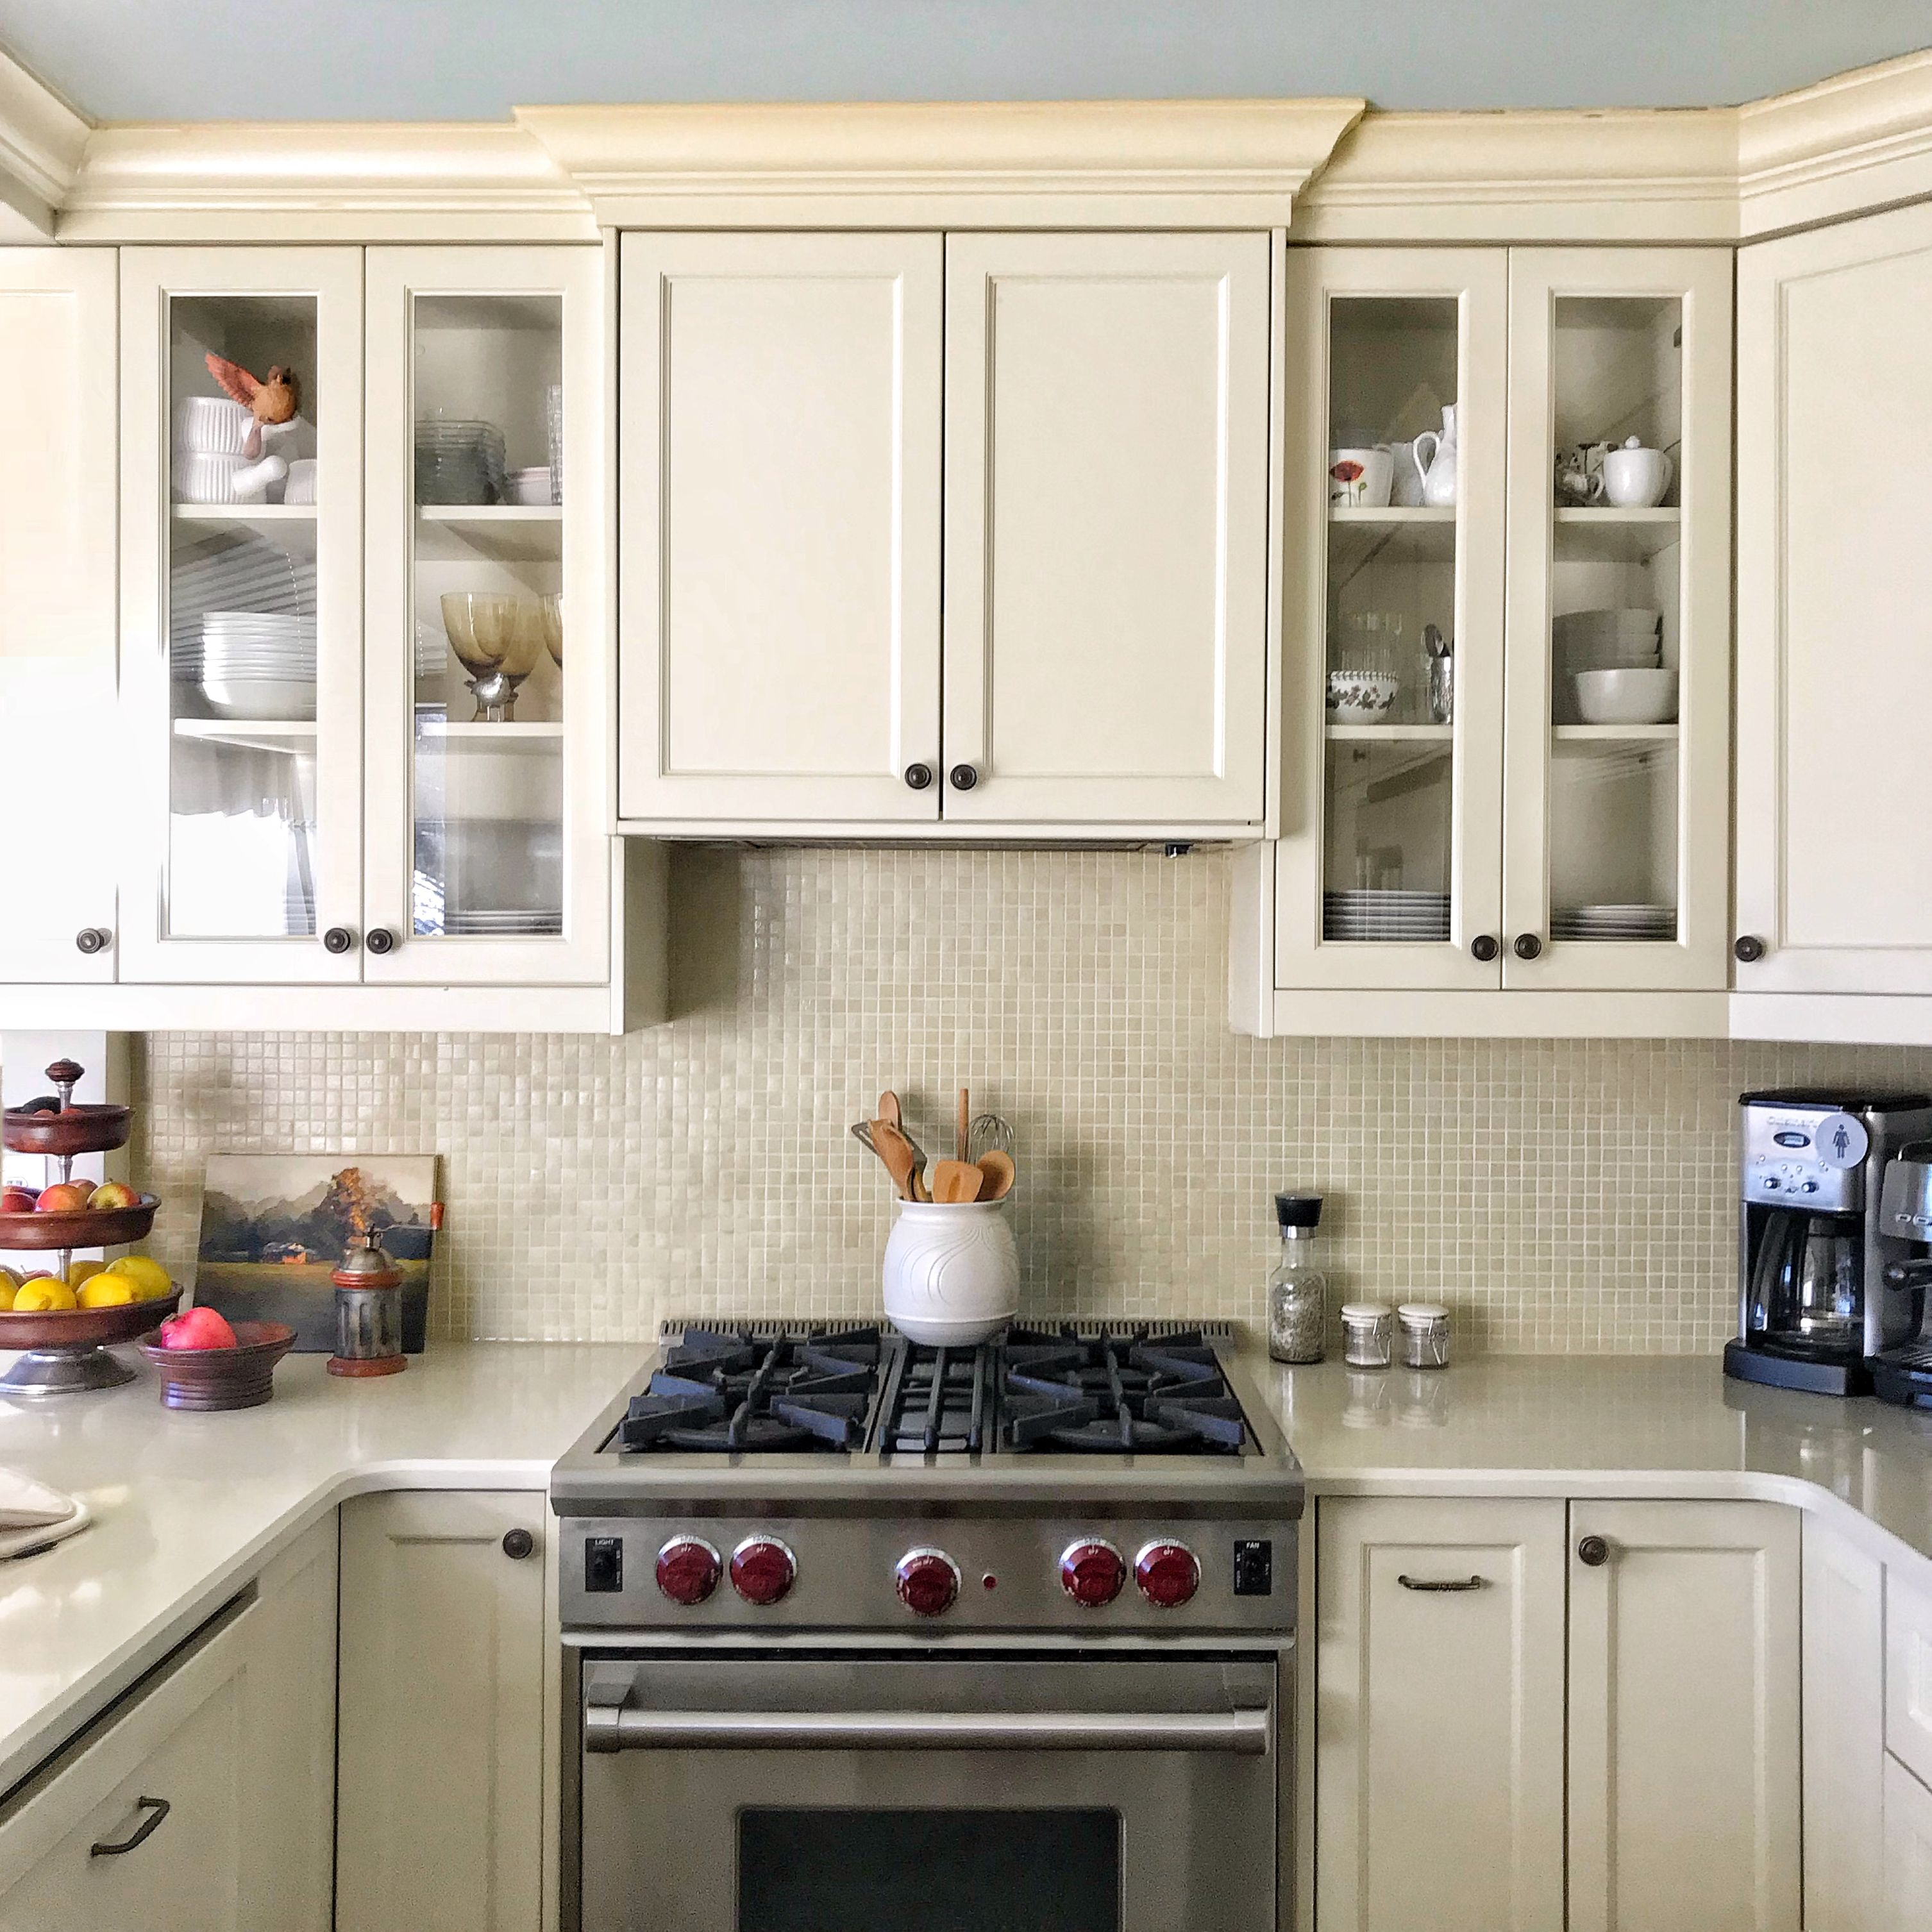 Small Kitchen With Exhaust Fan Hidden Up Inside Cabinetry Rather